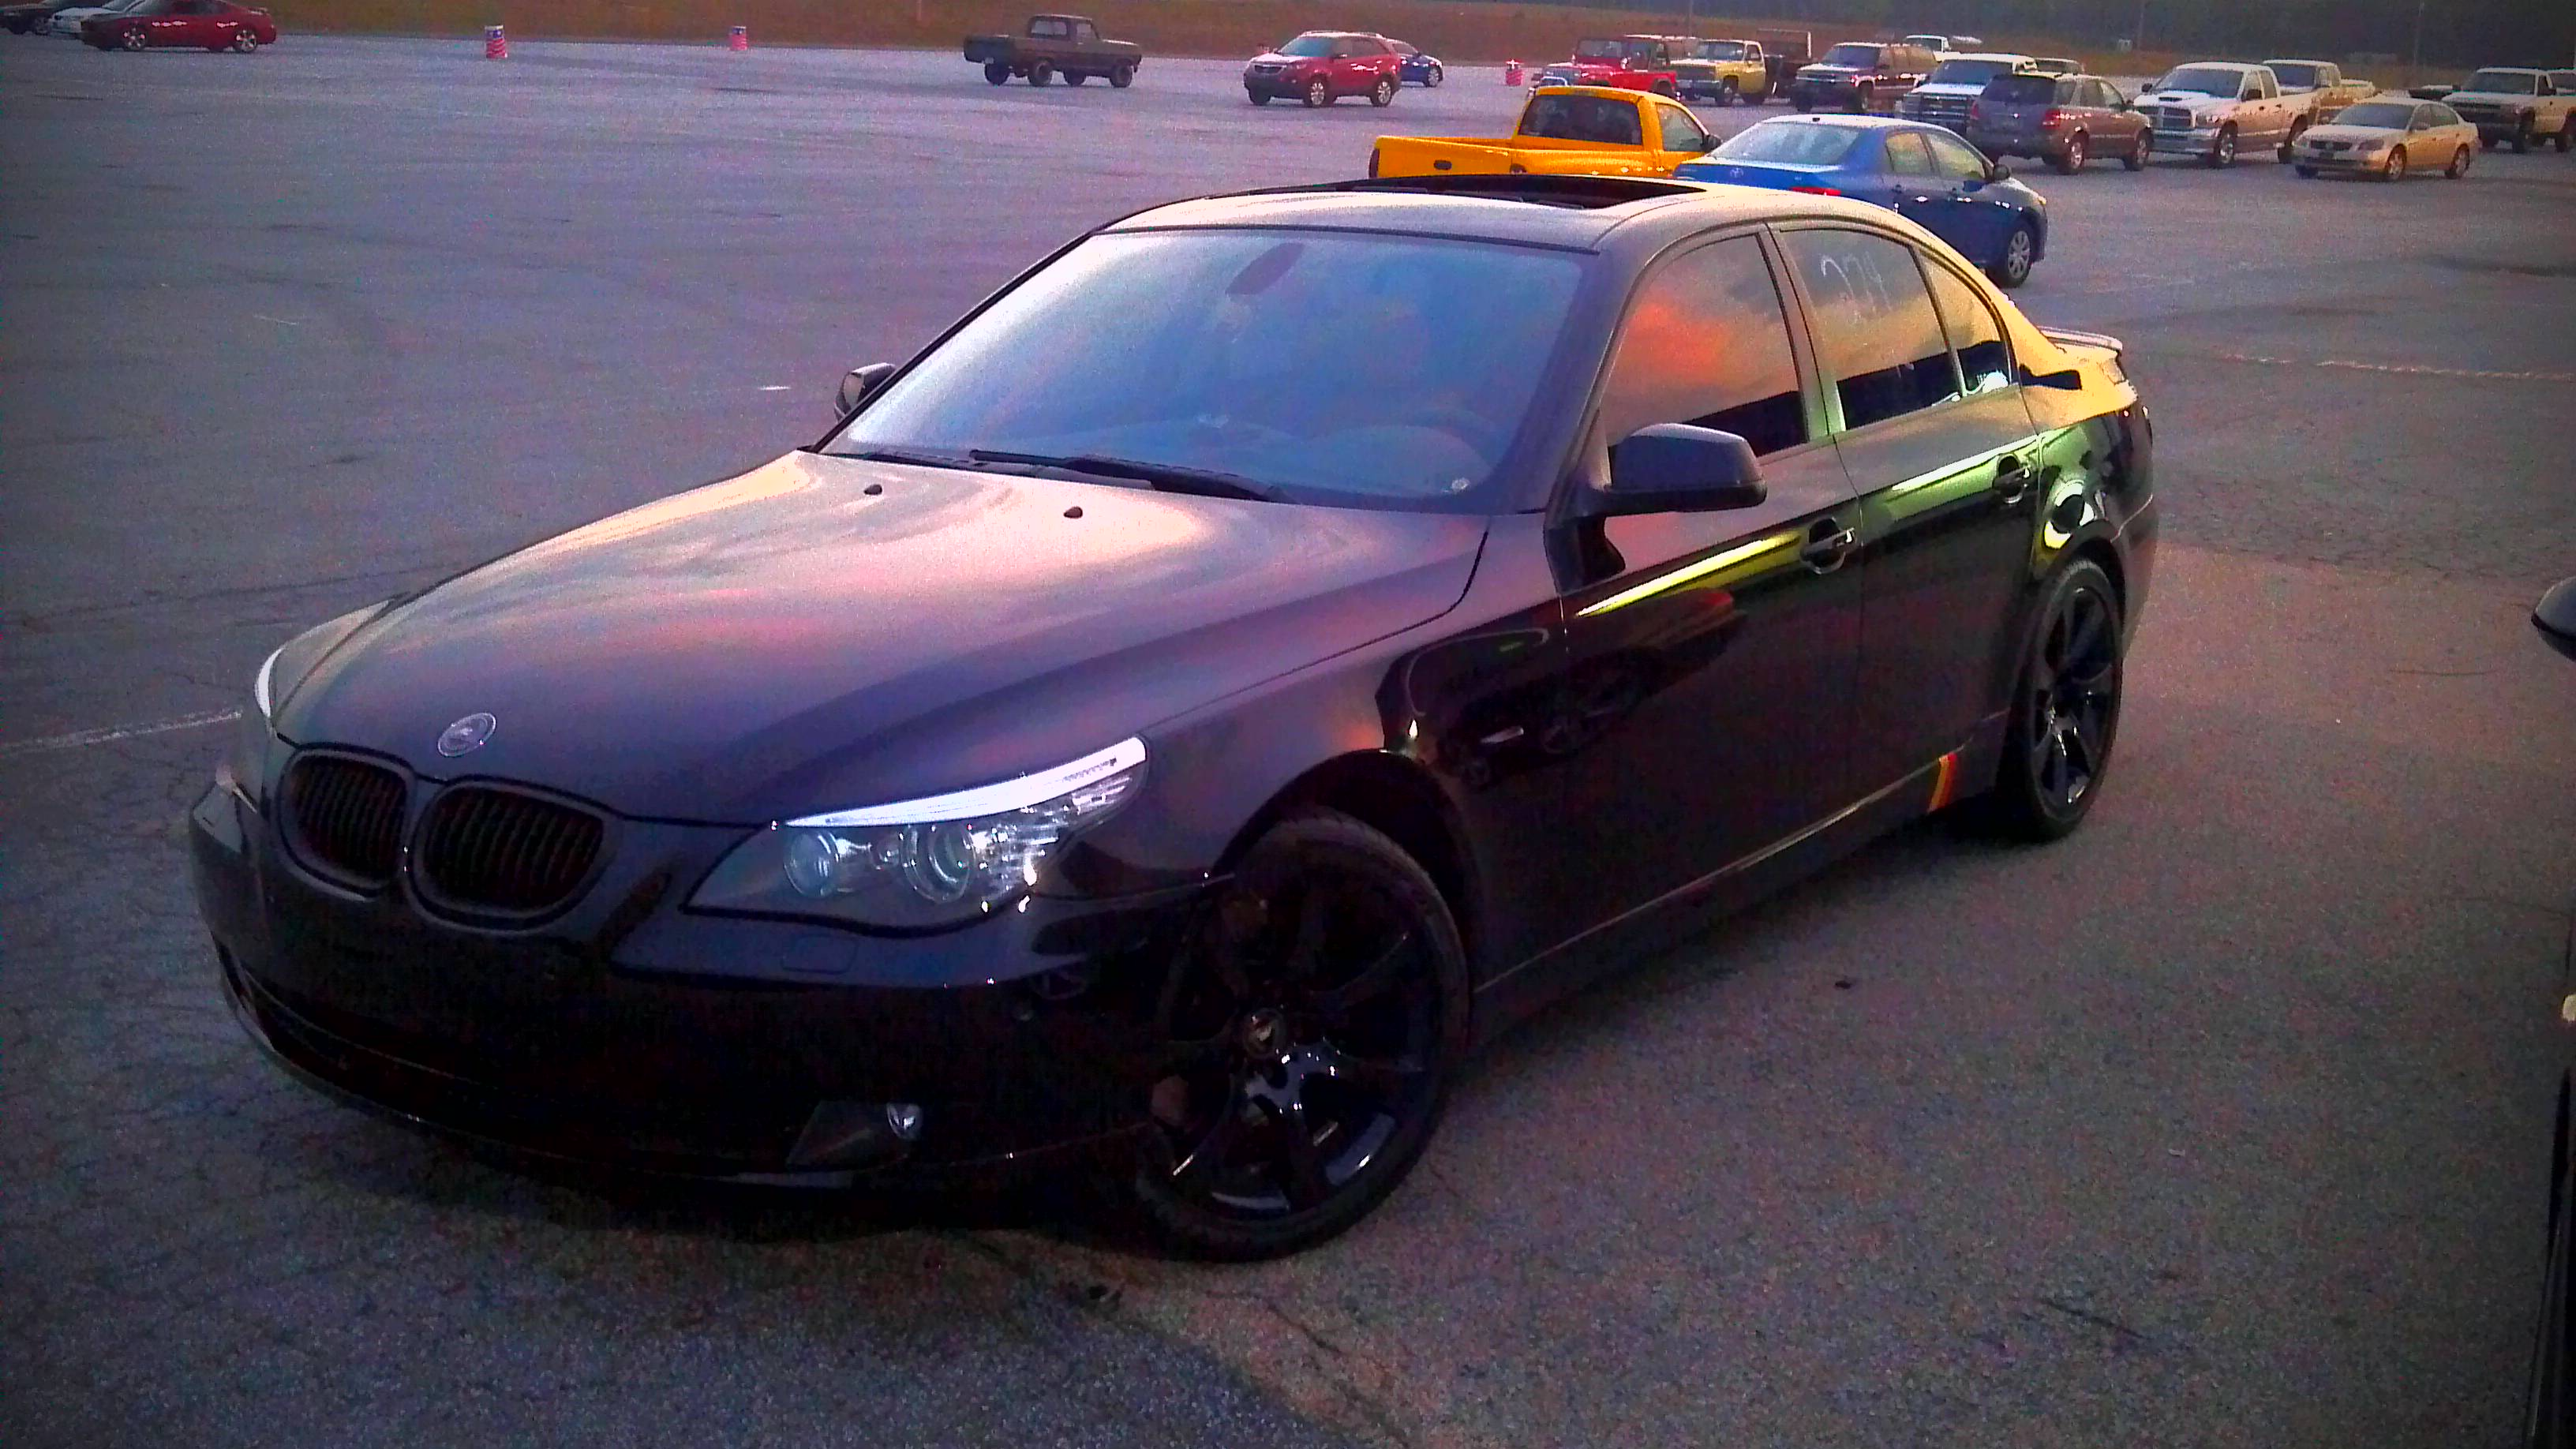 BMW I Mile Drag Racing Timeslip Specs DragTimescom - 2010 bmw 535i